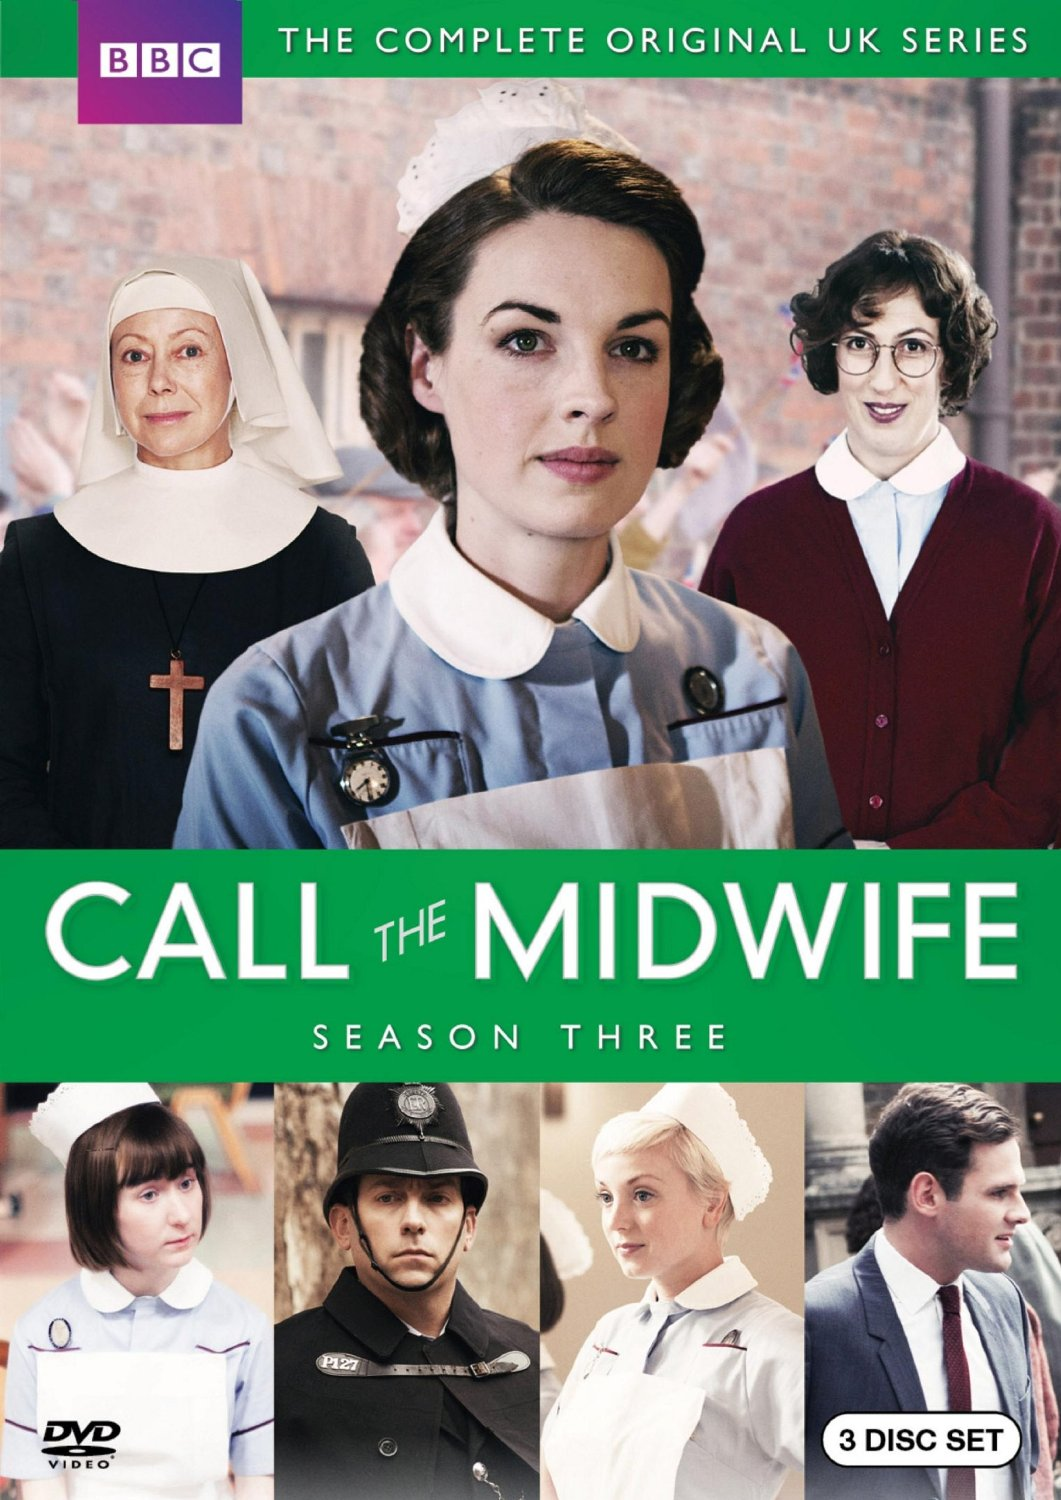 Call the Midwife Seasons 1-3 DVD Boxset